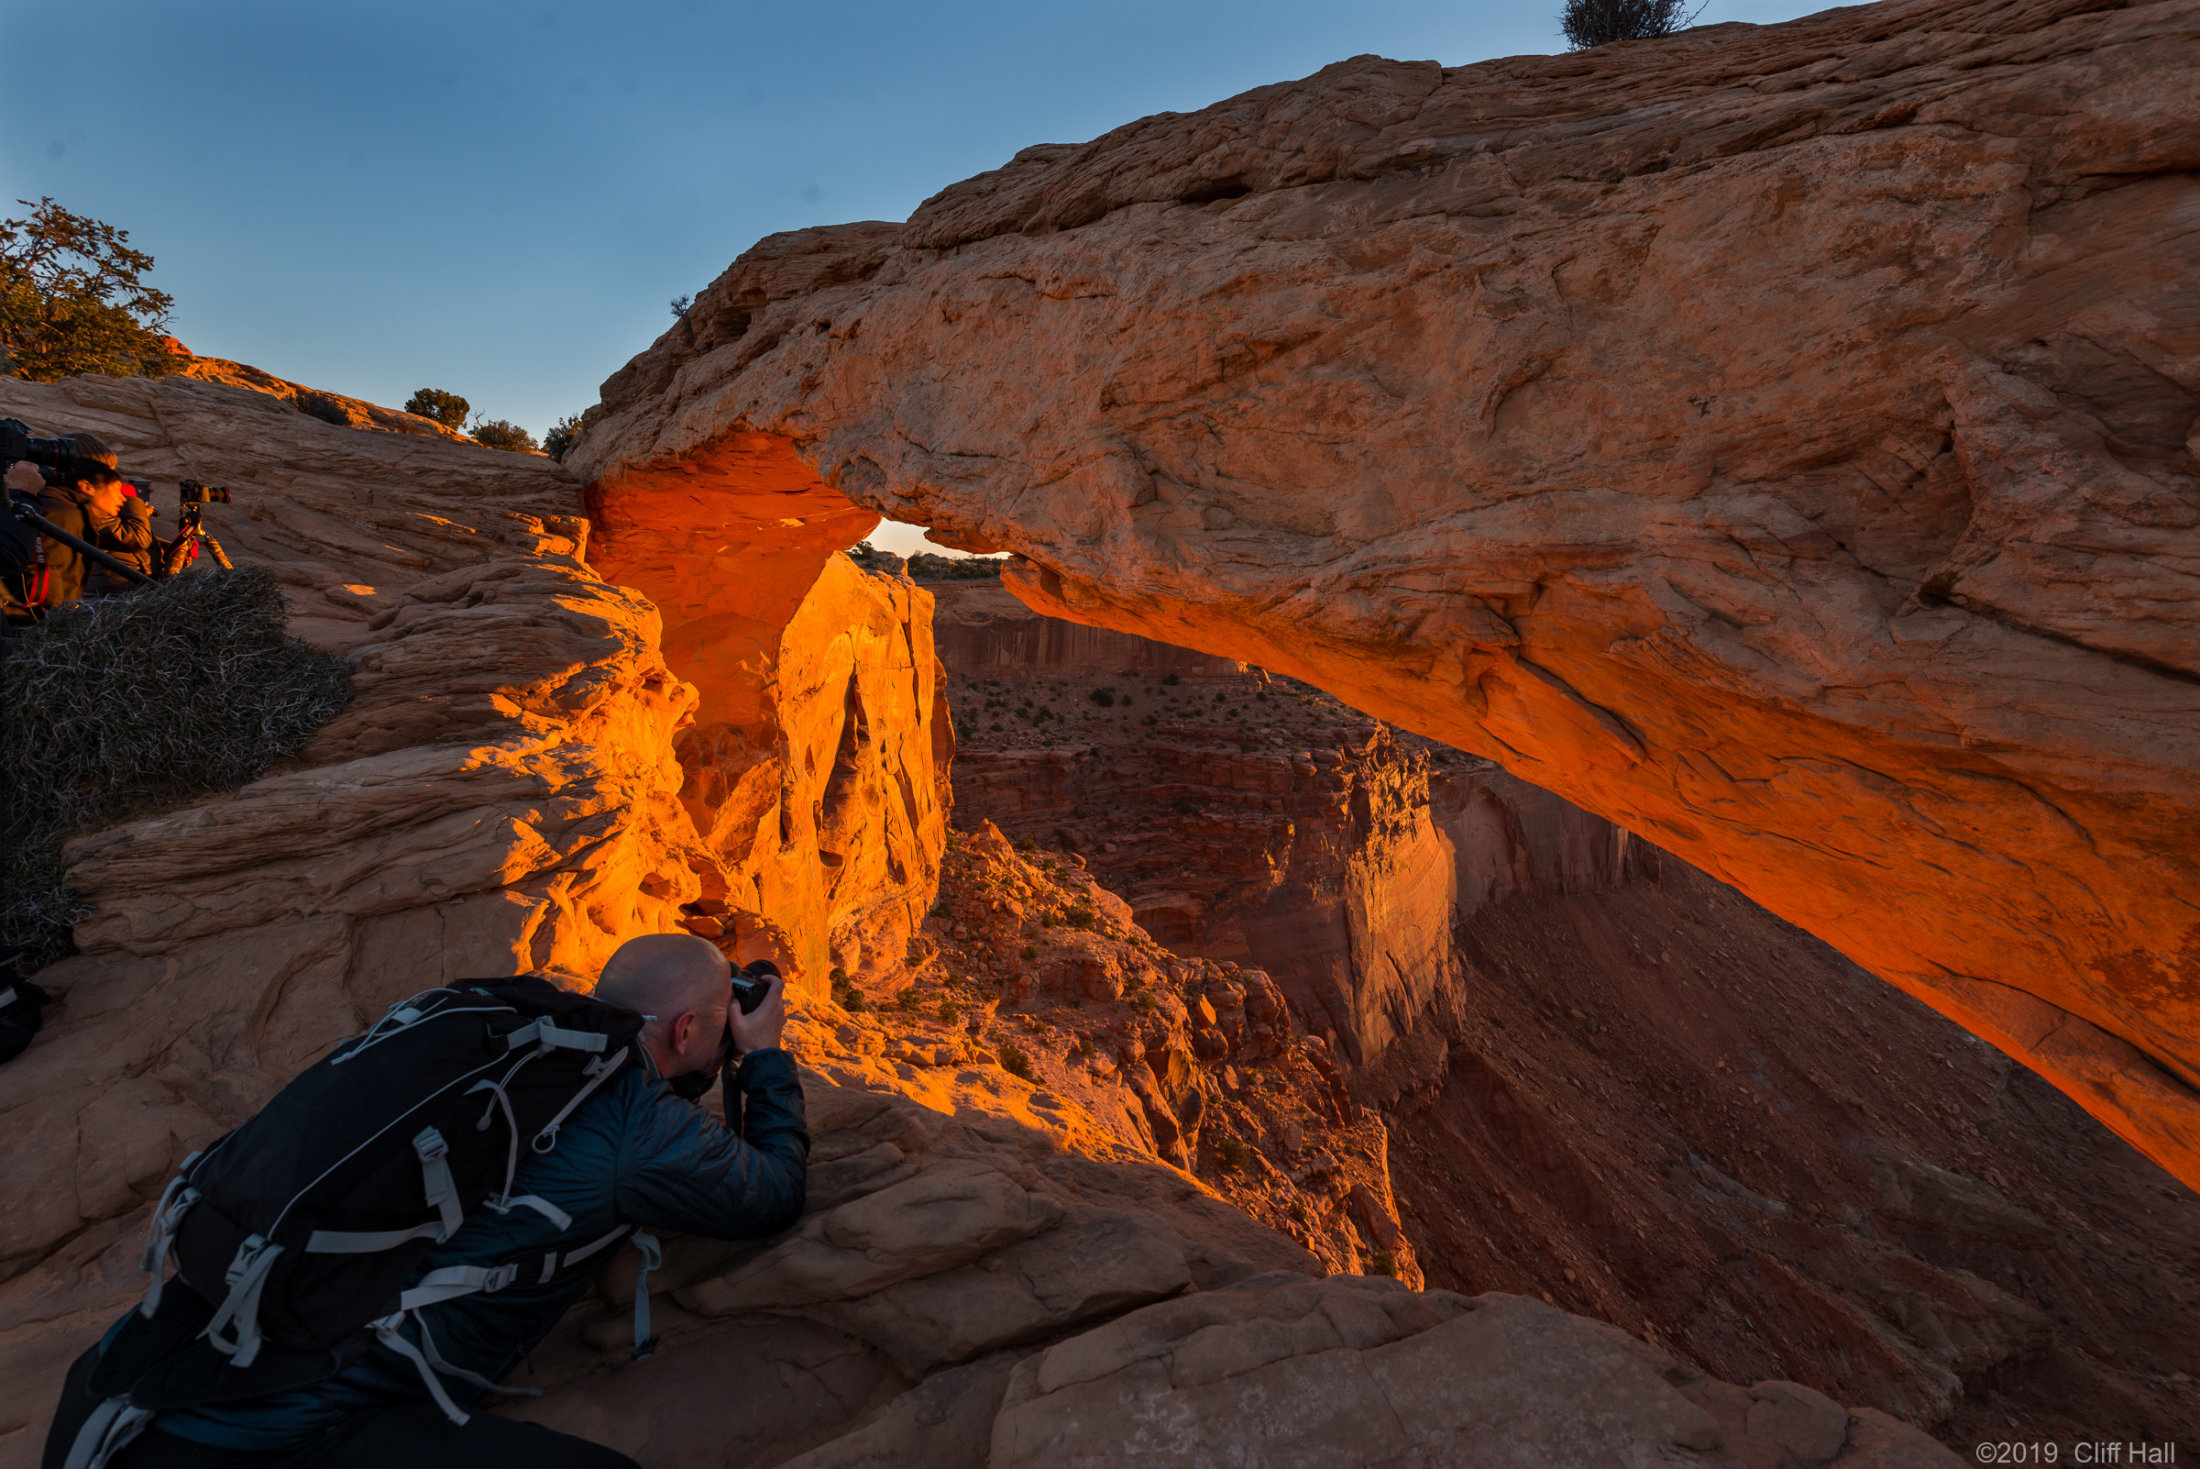 Looking for that Kodak moment at Mesa Arch